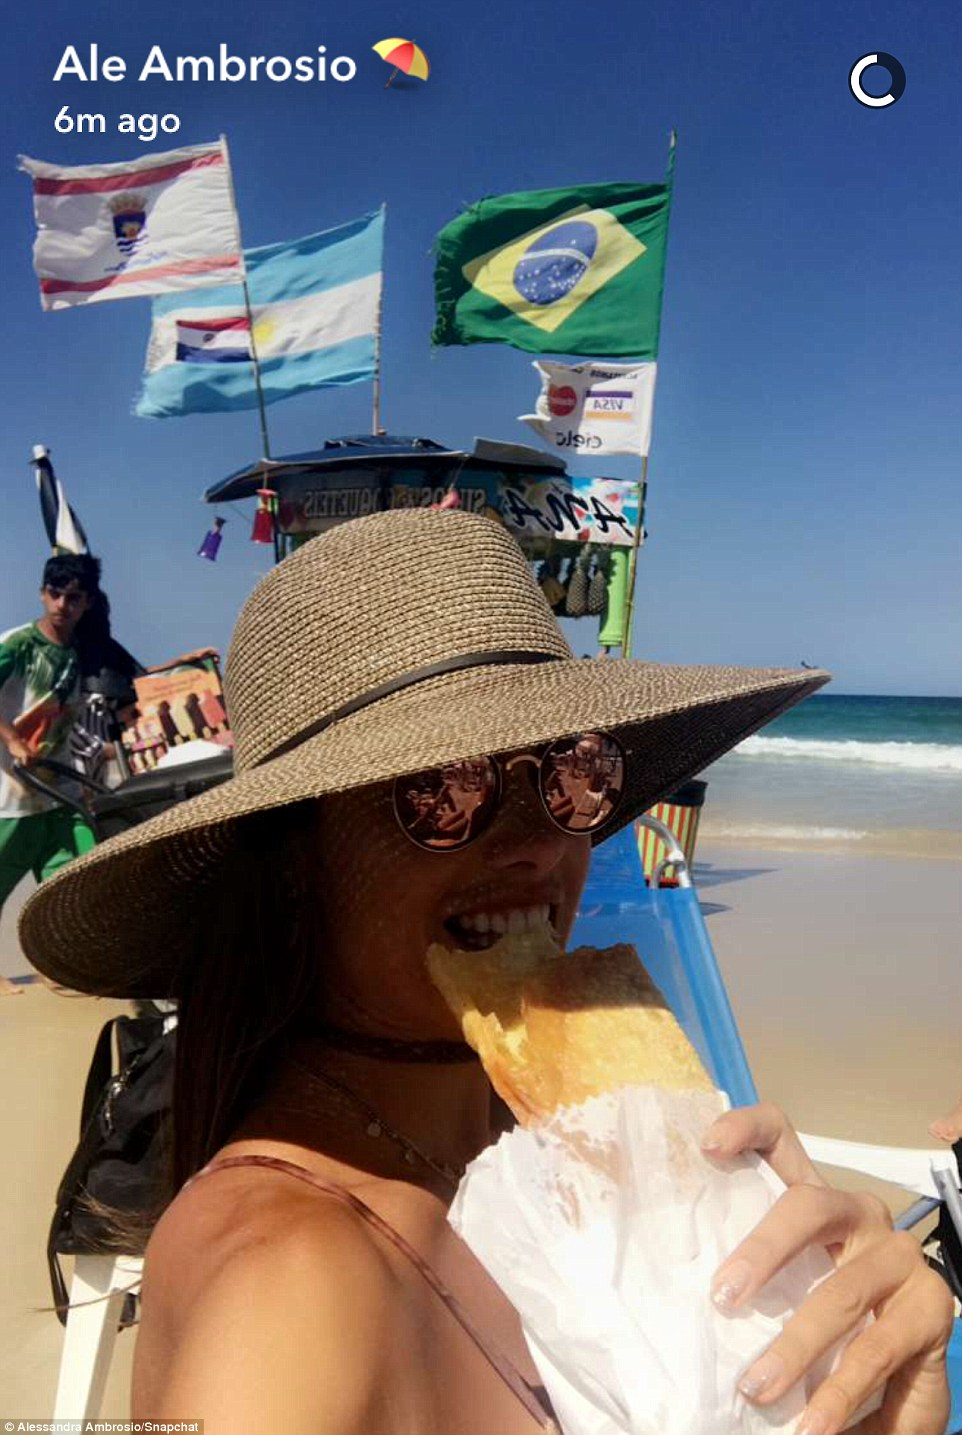 Yum: Alessandra shared this selfie while snacking on the beach